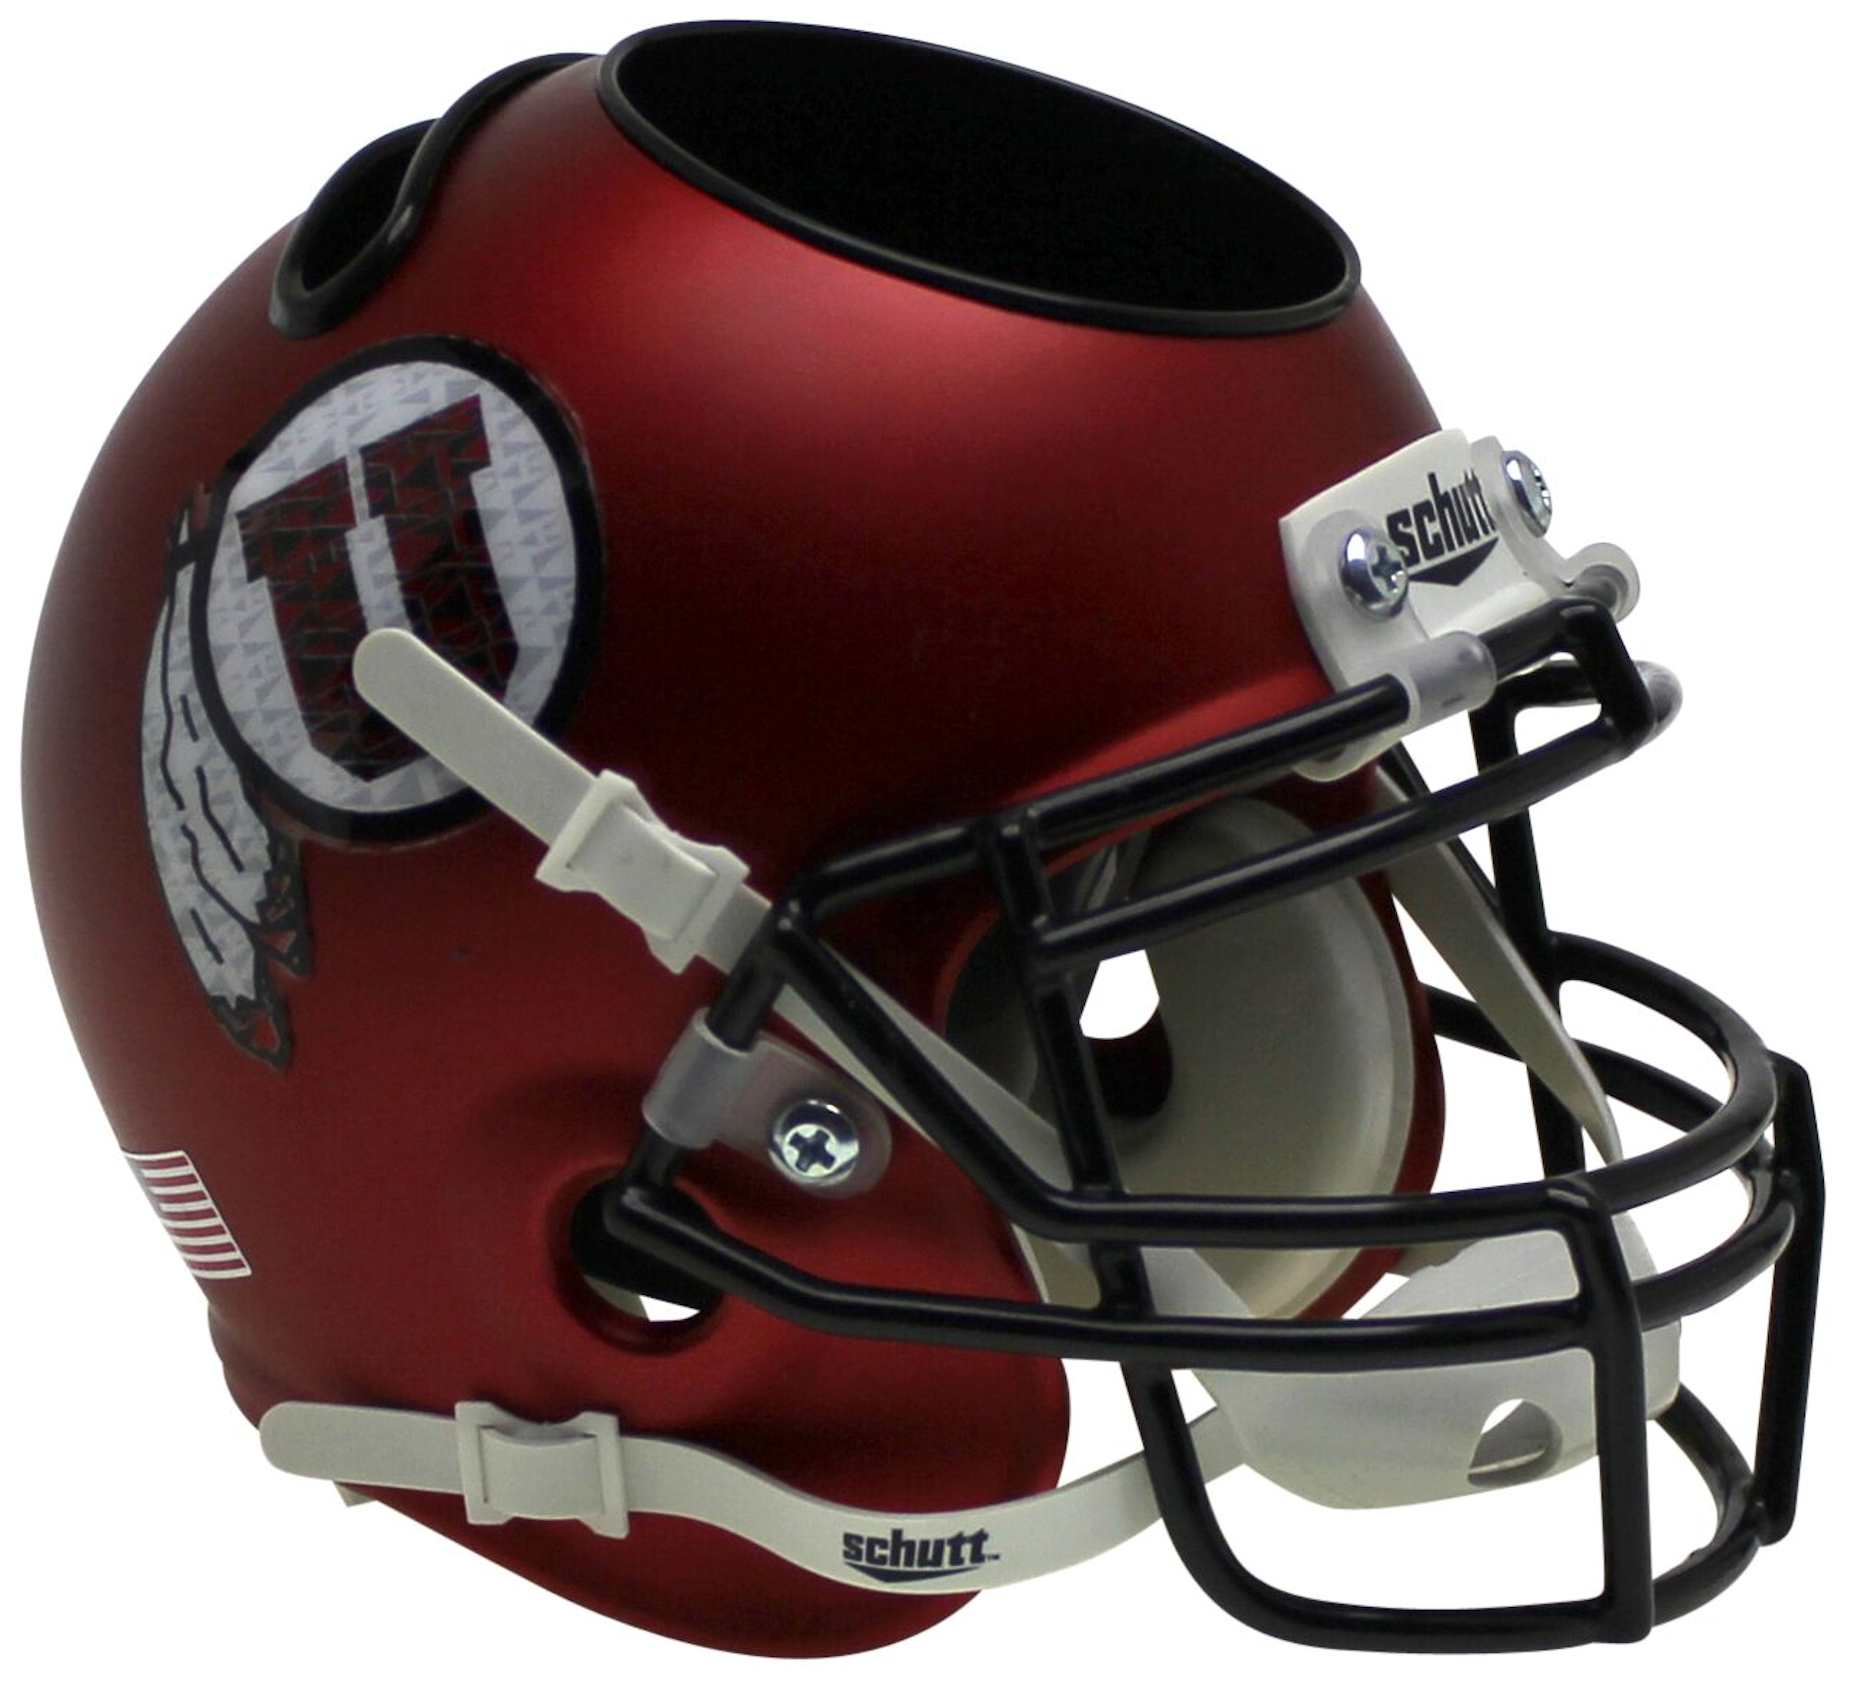 Utah Utes Miniature Football Helmet Desk Caddy <B>Satin Red Black Mask</B>